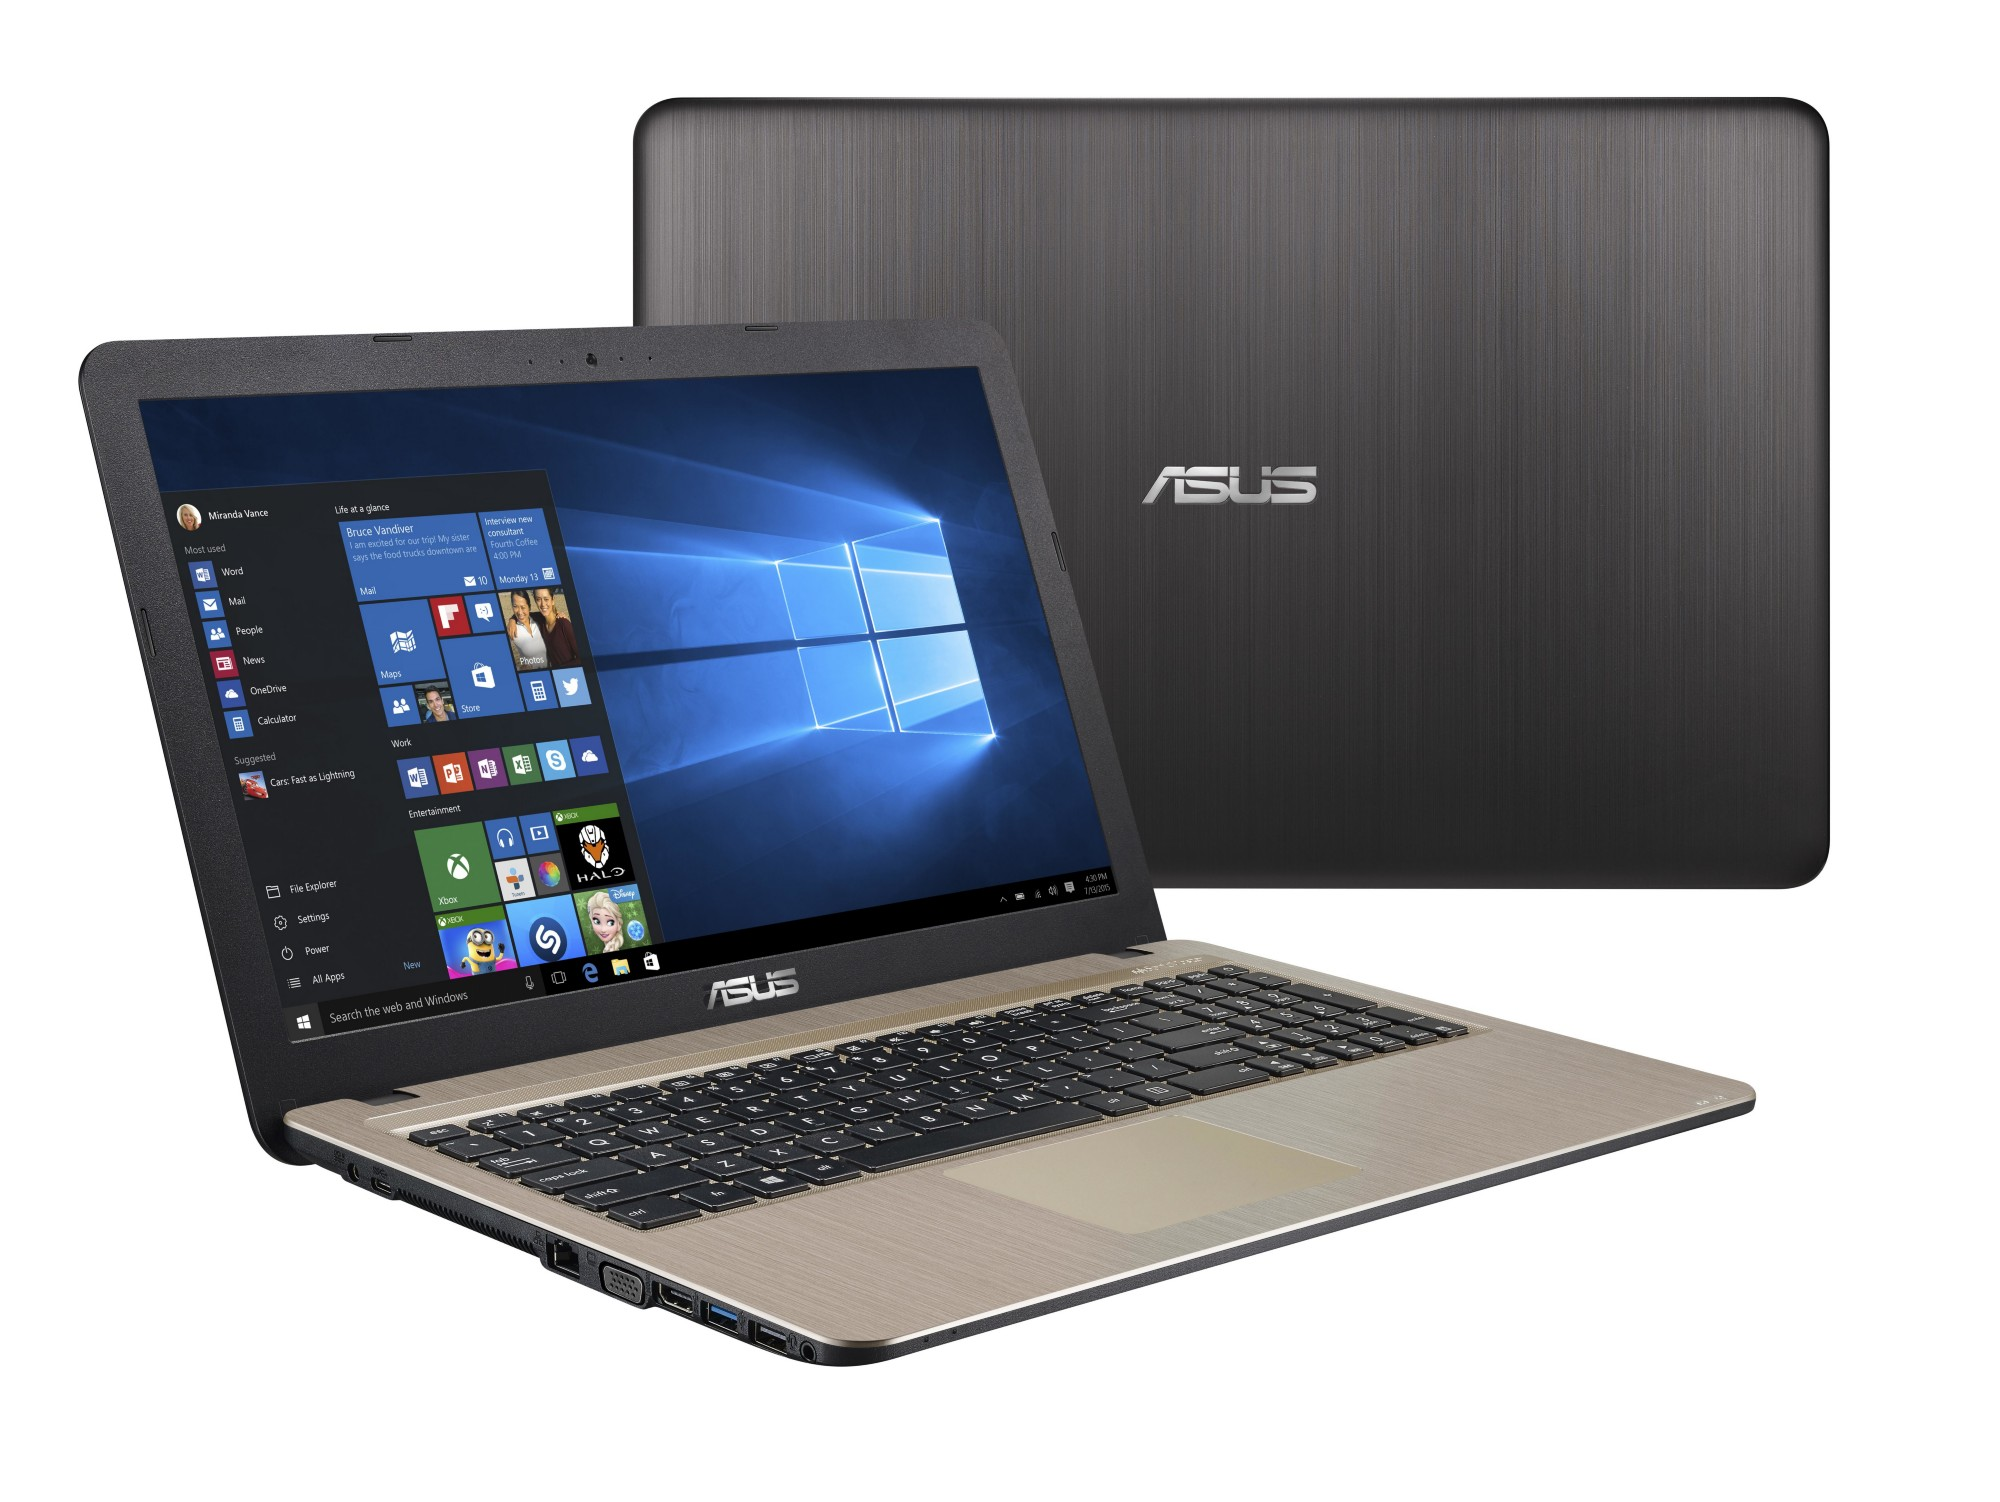 ASUS X540M Celeron N4000 Laptop with 15.6 Screen and 1 Tb storage